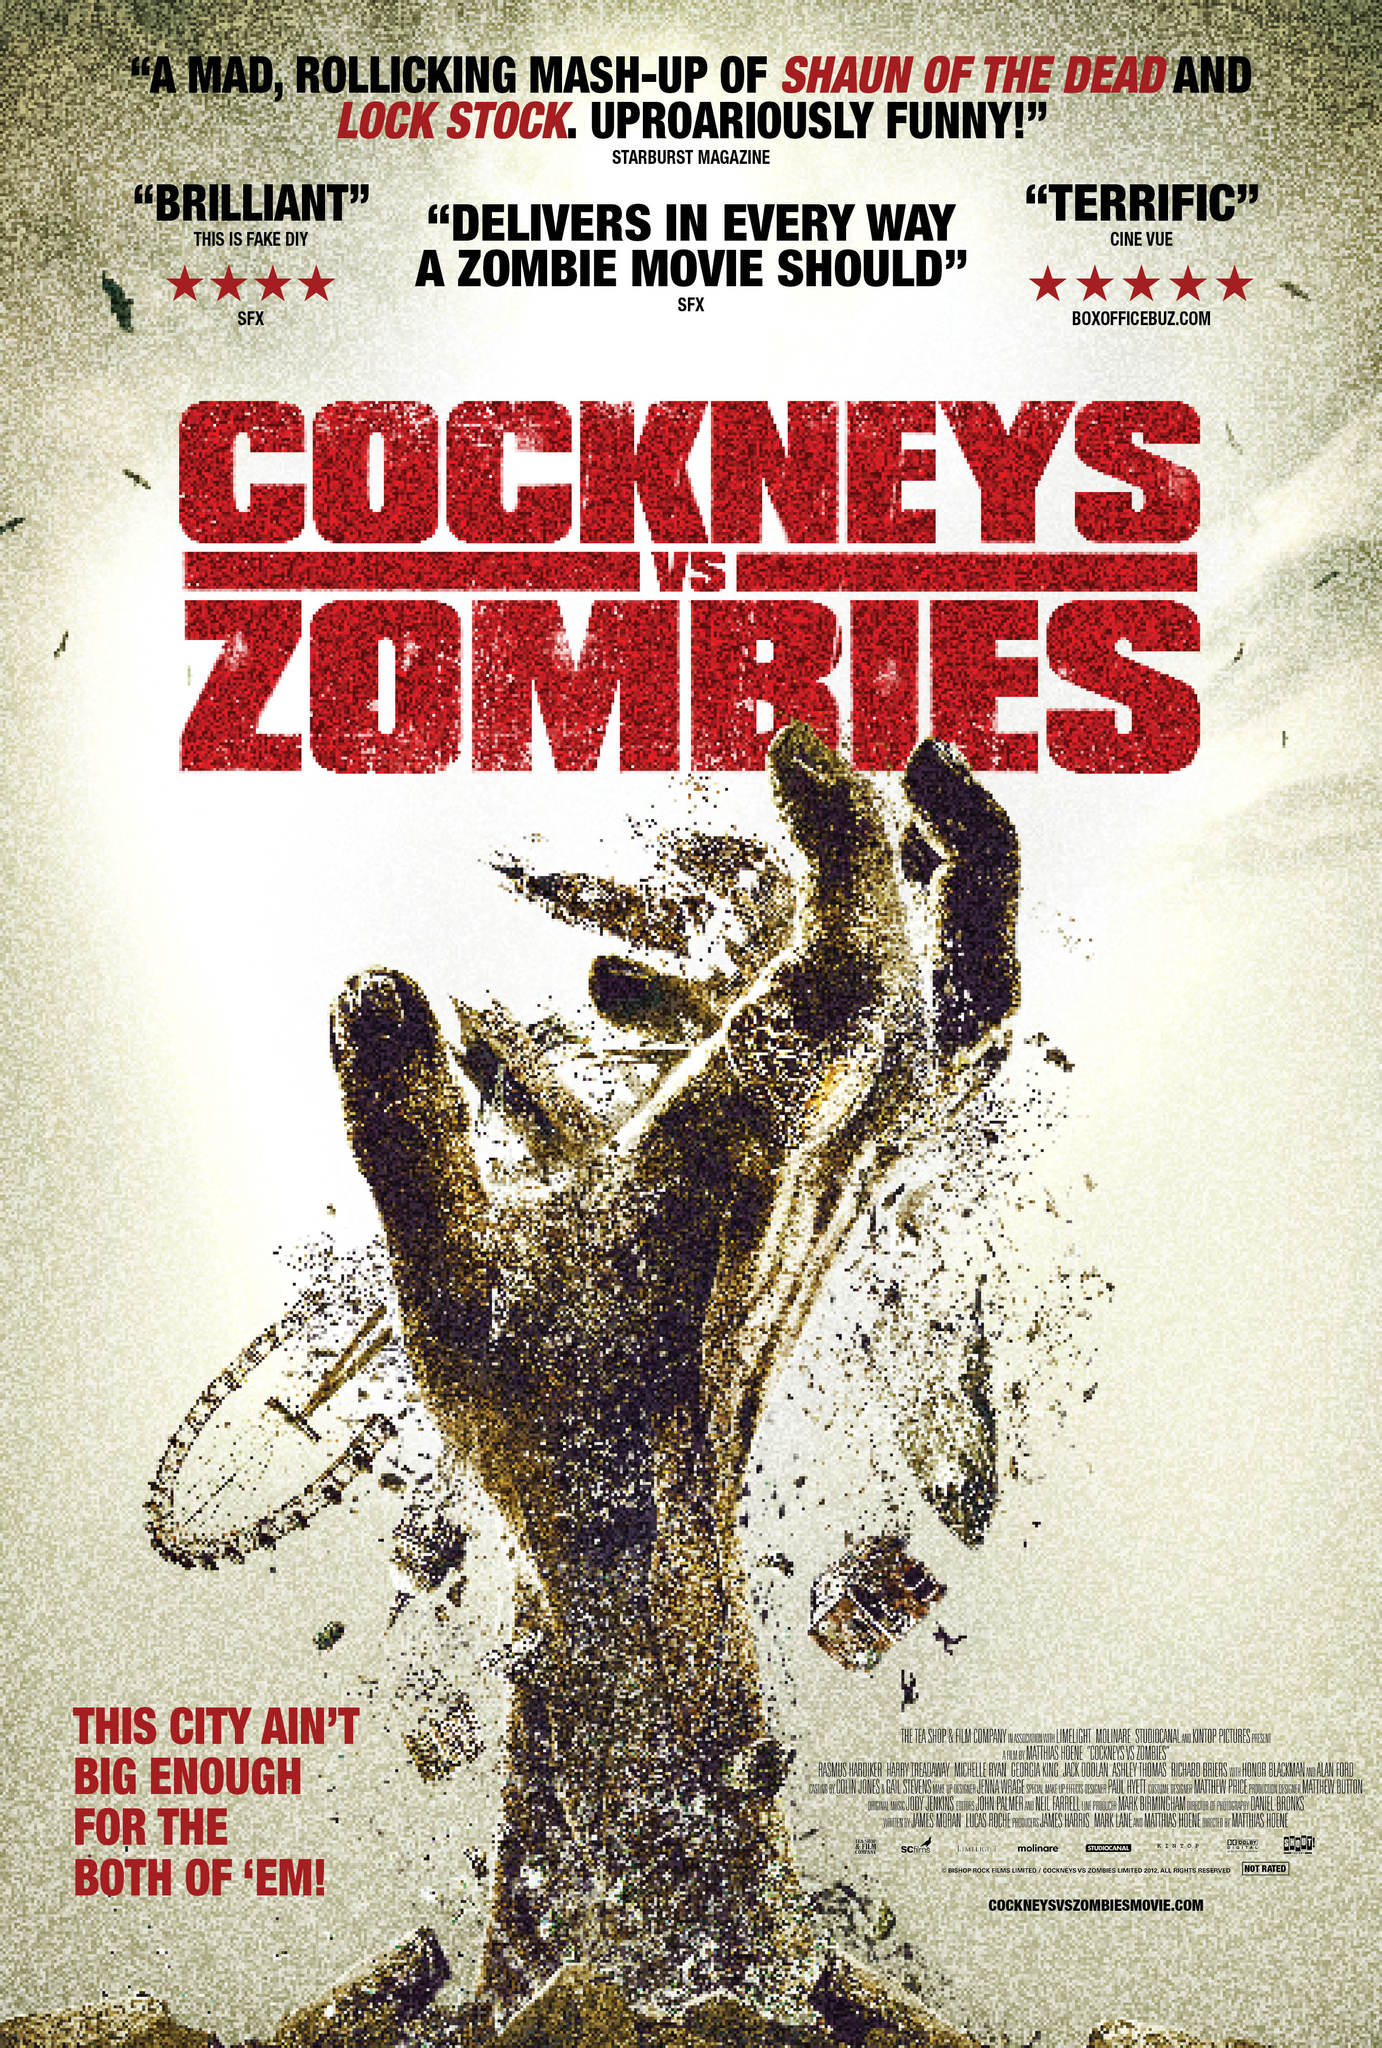 neys vs Zombies (2012) - IMDb Zombie Home Design Html on old fashioned home design, new mexico home design, earthquake home design, macabre home design, hurricane home design, hollywood home design, monster home design,